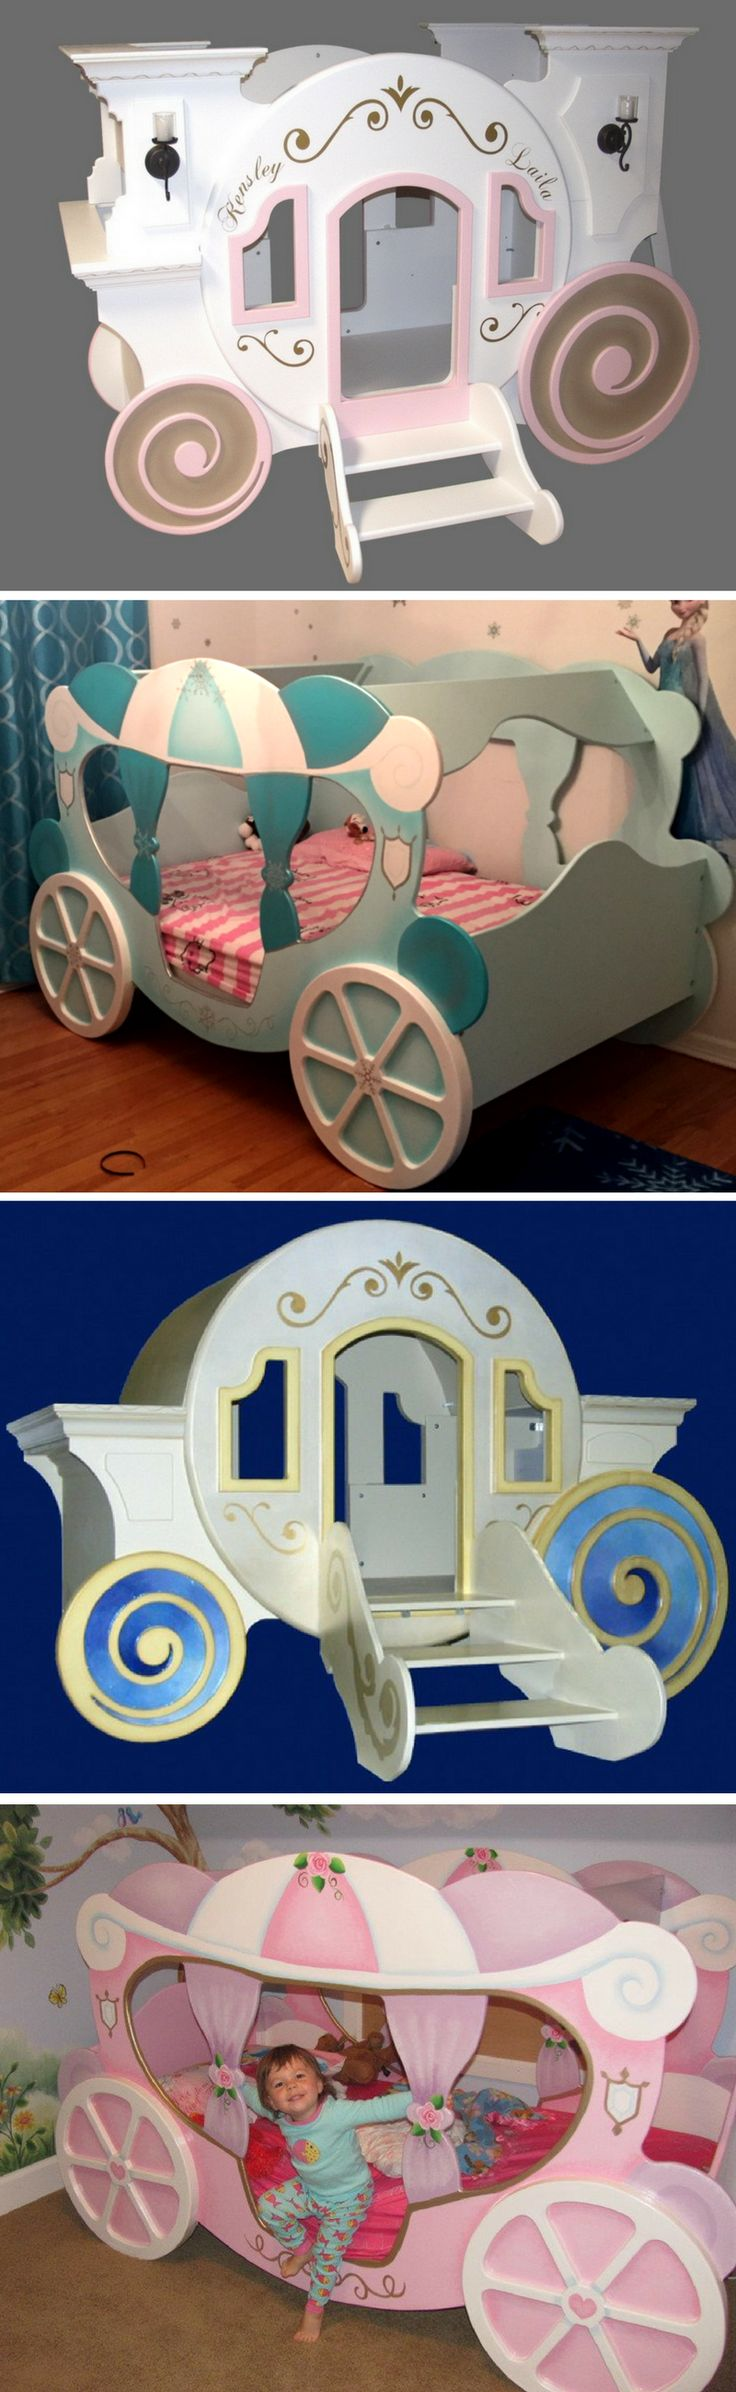 Every princess deserves the chance to ride to the ball in style! And no matter what kind of princess you have, we have the perfect princess carriage bed just for her! These carriages can be either bunk, or single beds, and we can paint them to match any princesses style. Click to learn more!